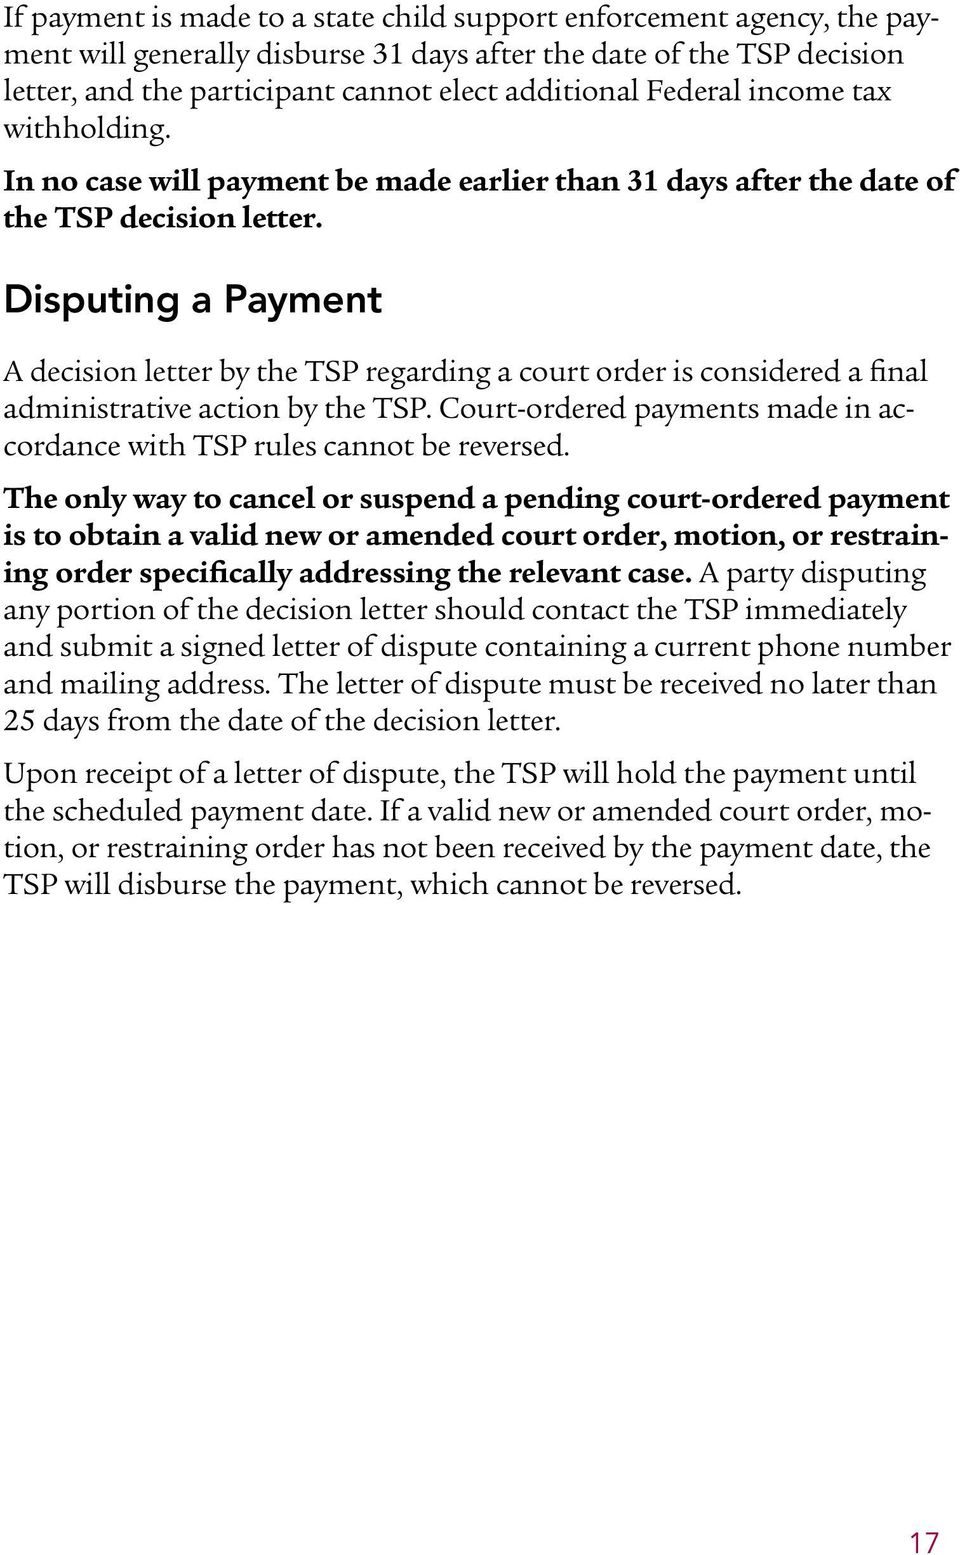 Disputing a Payment A decision letter by the TSP regarding a court order is considered a final administrative action by the TSP.